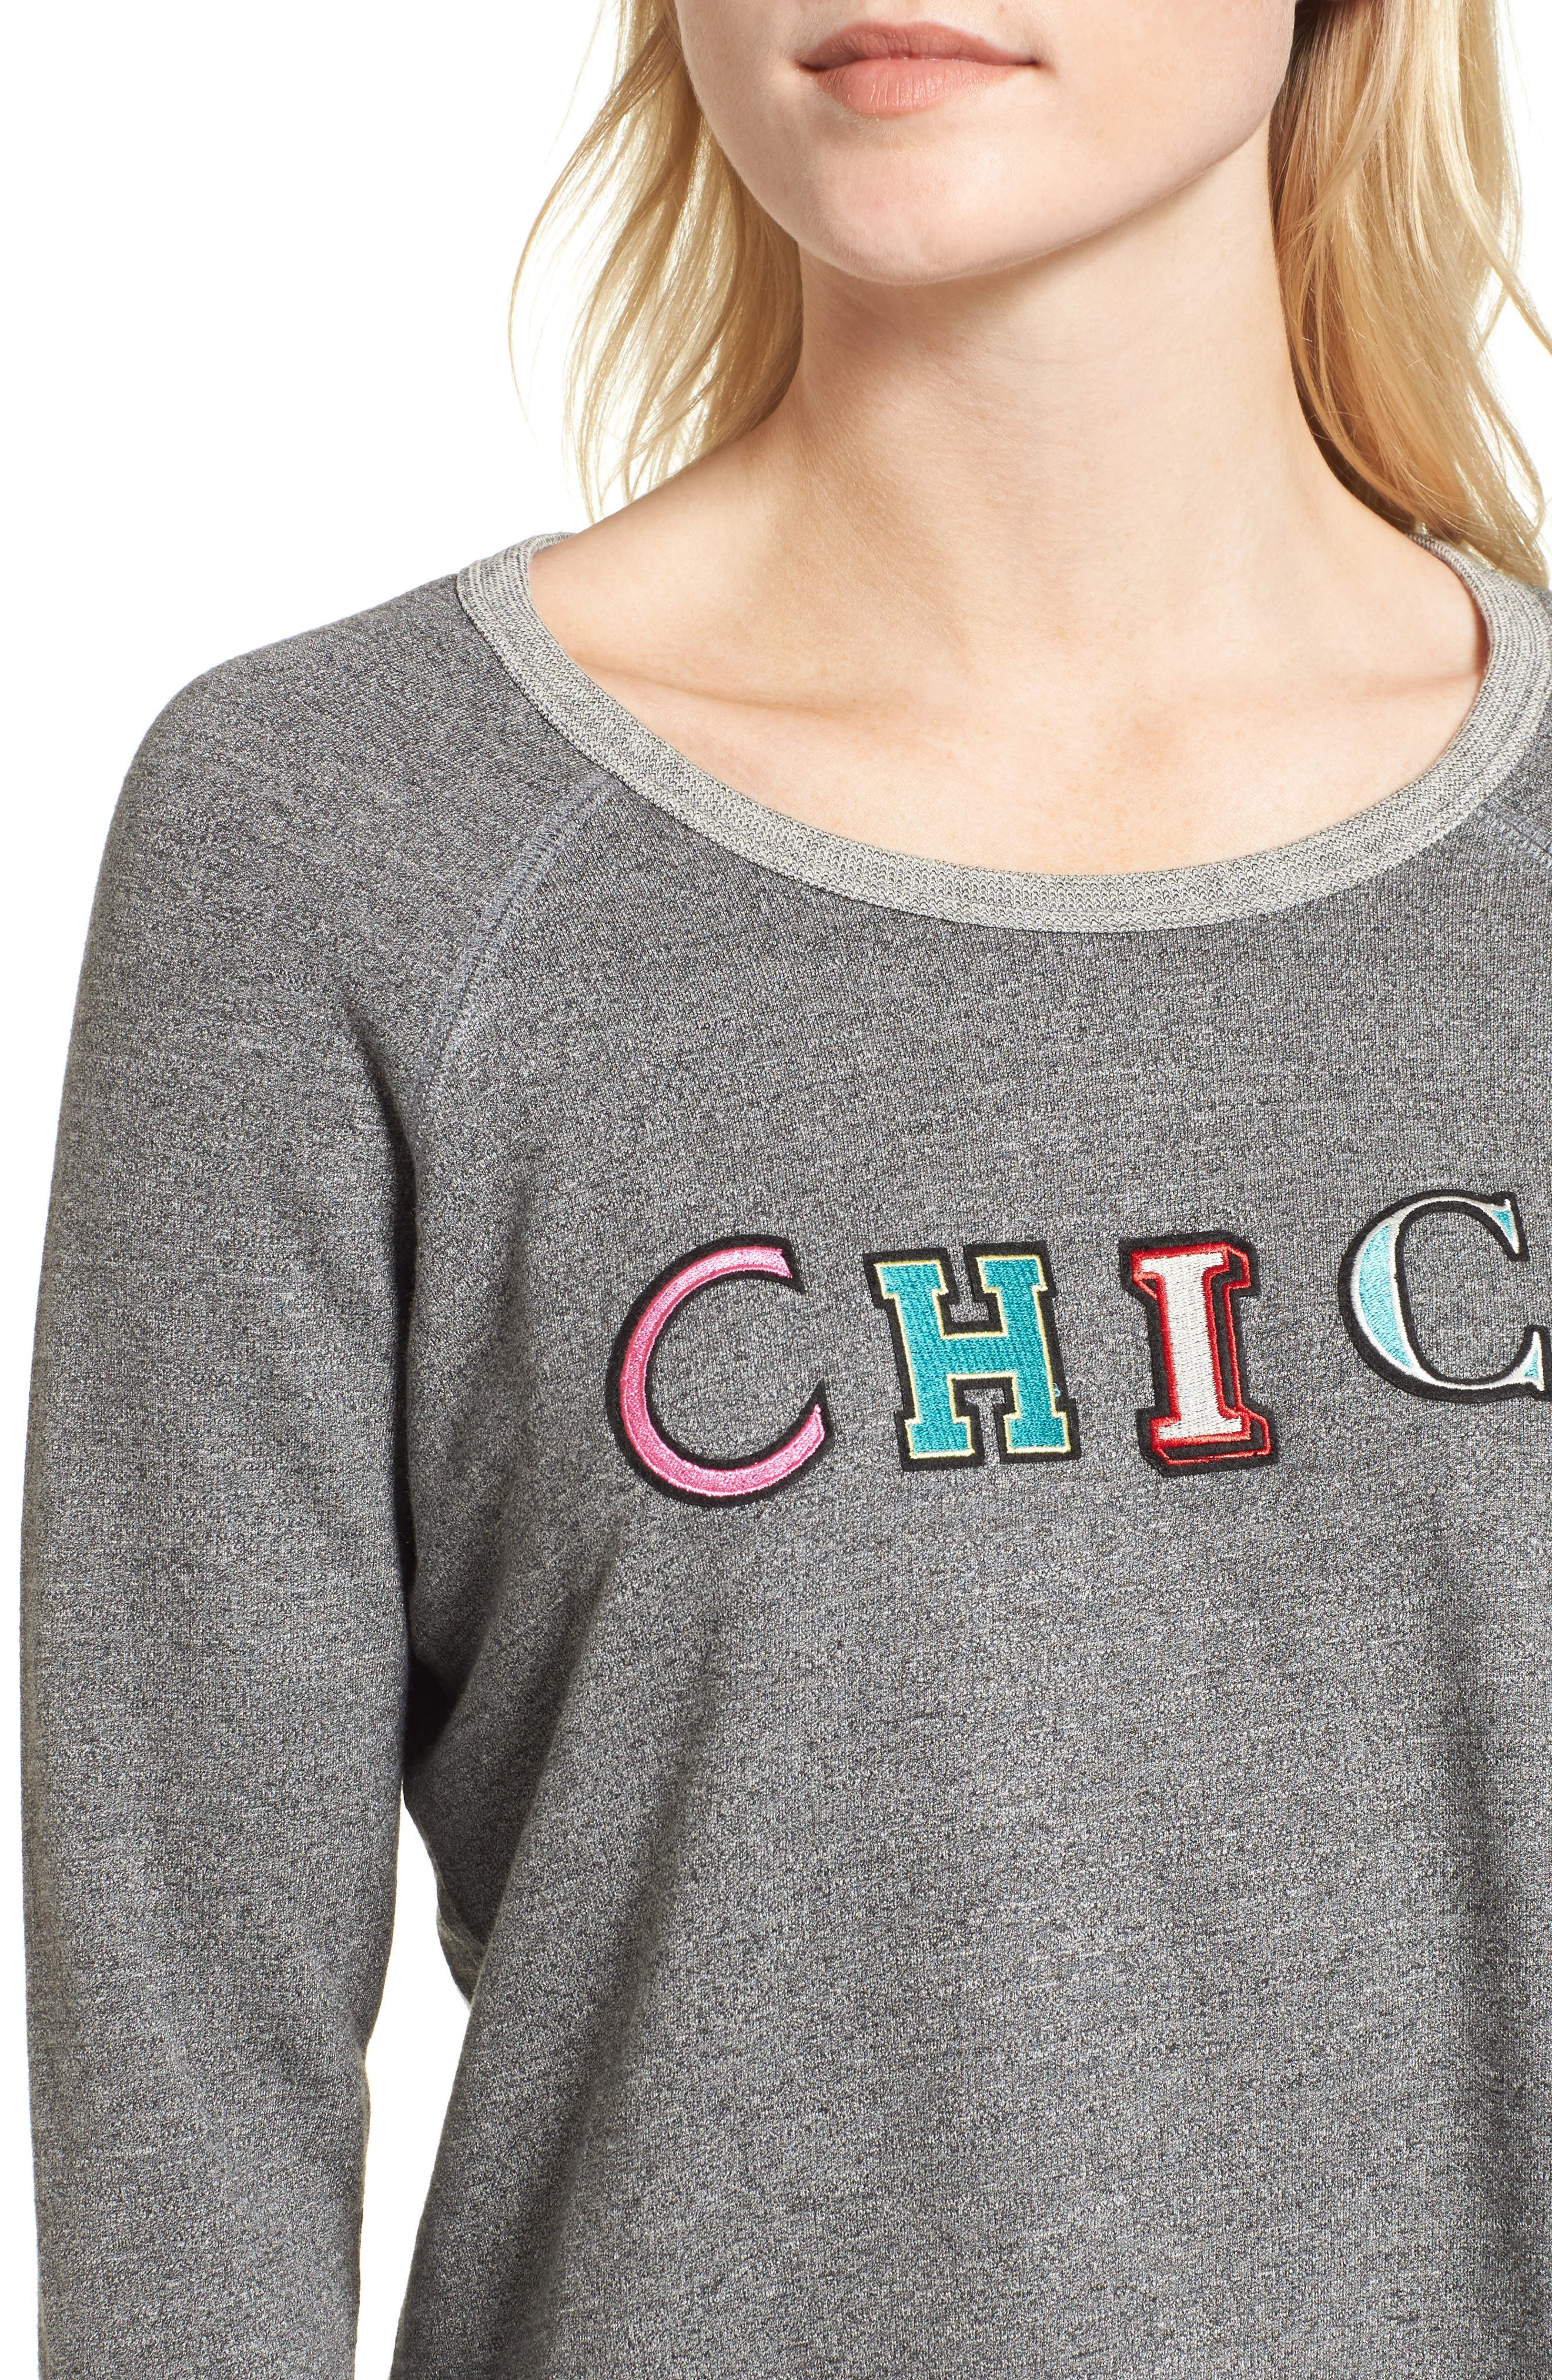 Chic Crop Sweatshirt,                             Alternate thumbnail 4, color,                             Heather Grey